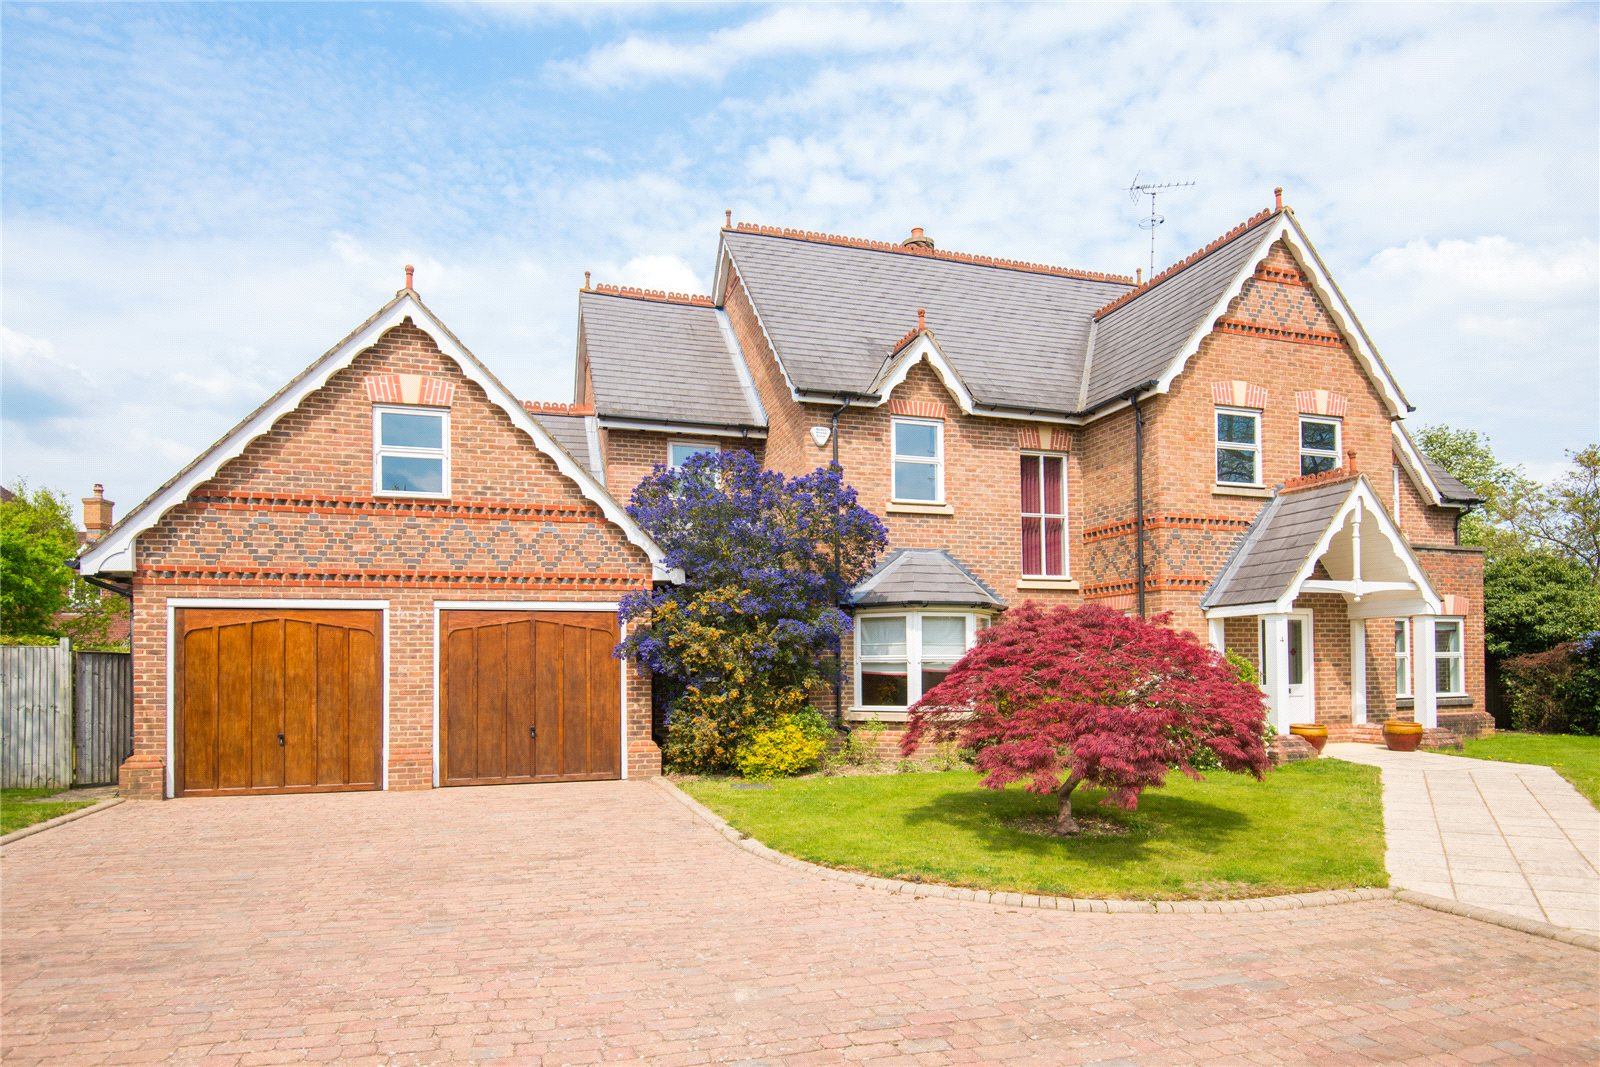 Maison unifamiliale pour l Vente à Stoneyfield, Gerrards Cross, Buckinghamshire, SL9 Gerrards Cross, Angleterre